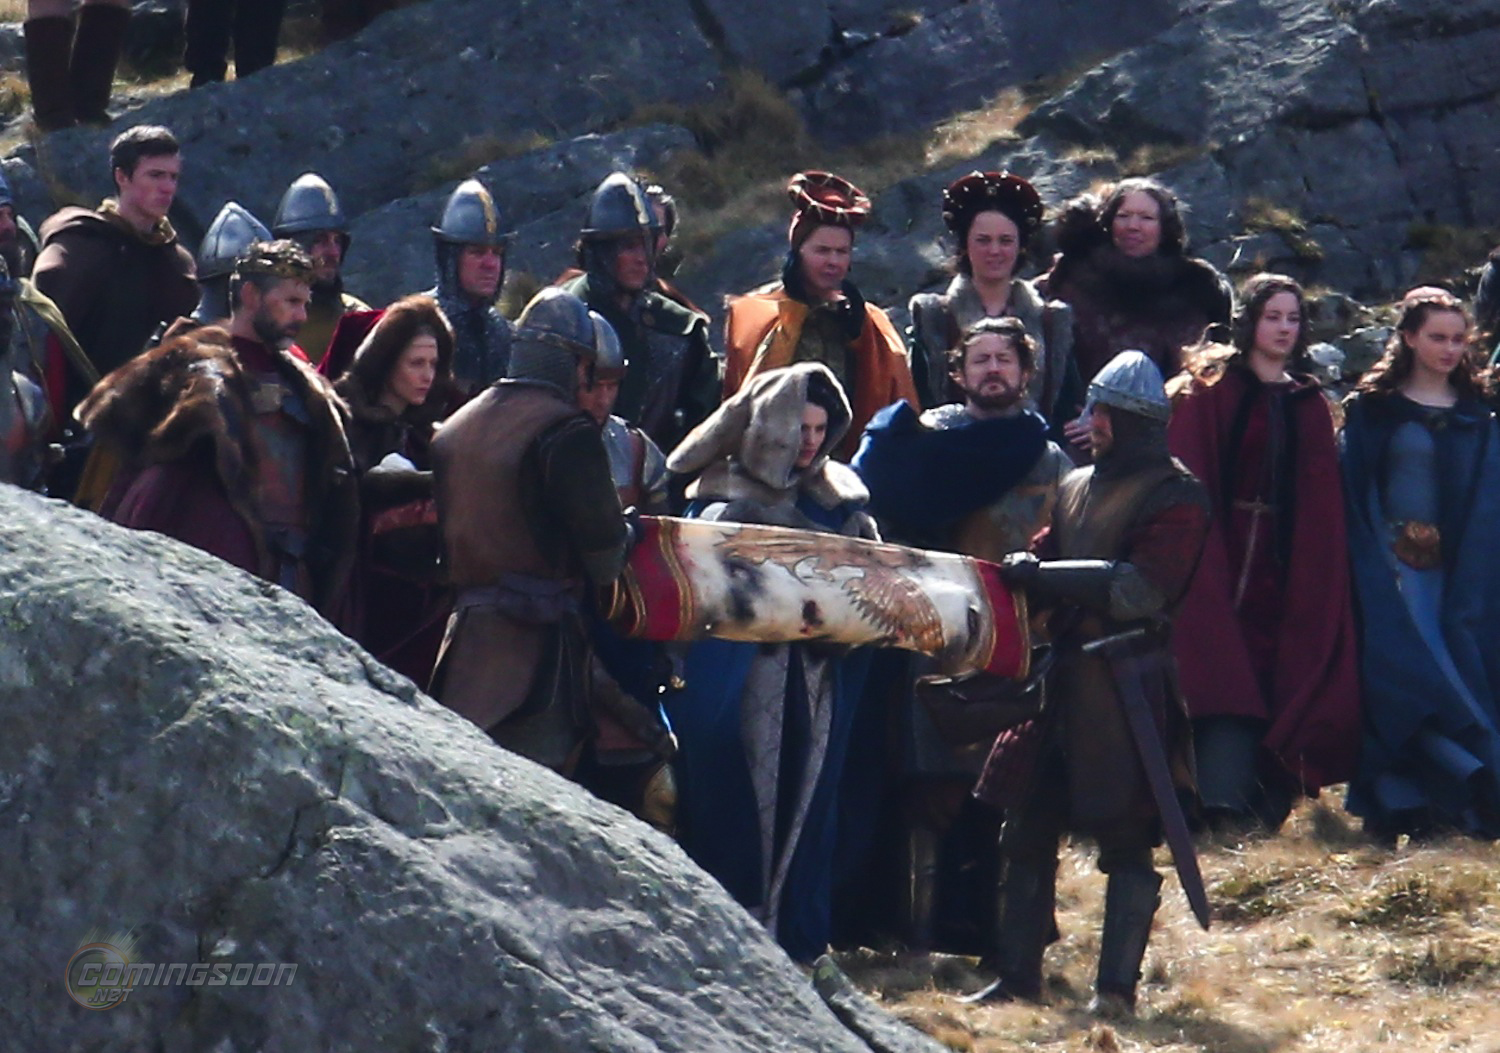 'Knights of the Roundtable: King Arthur' filming